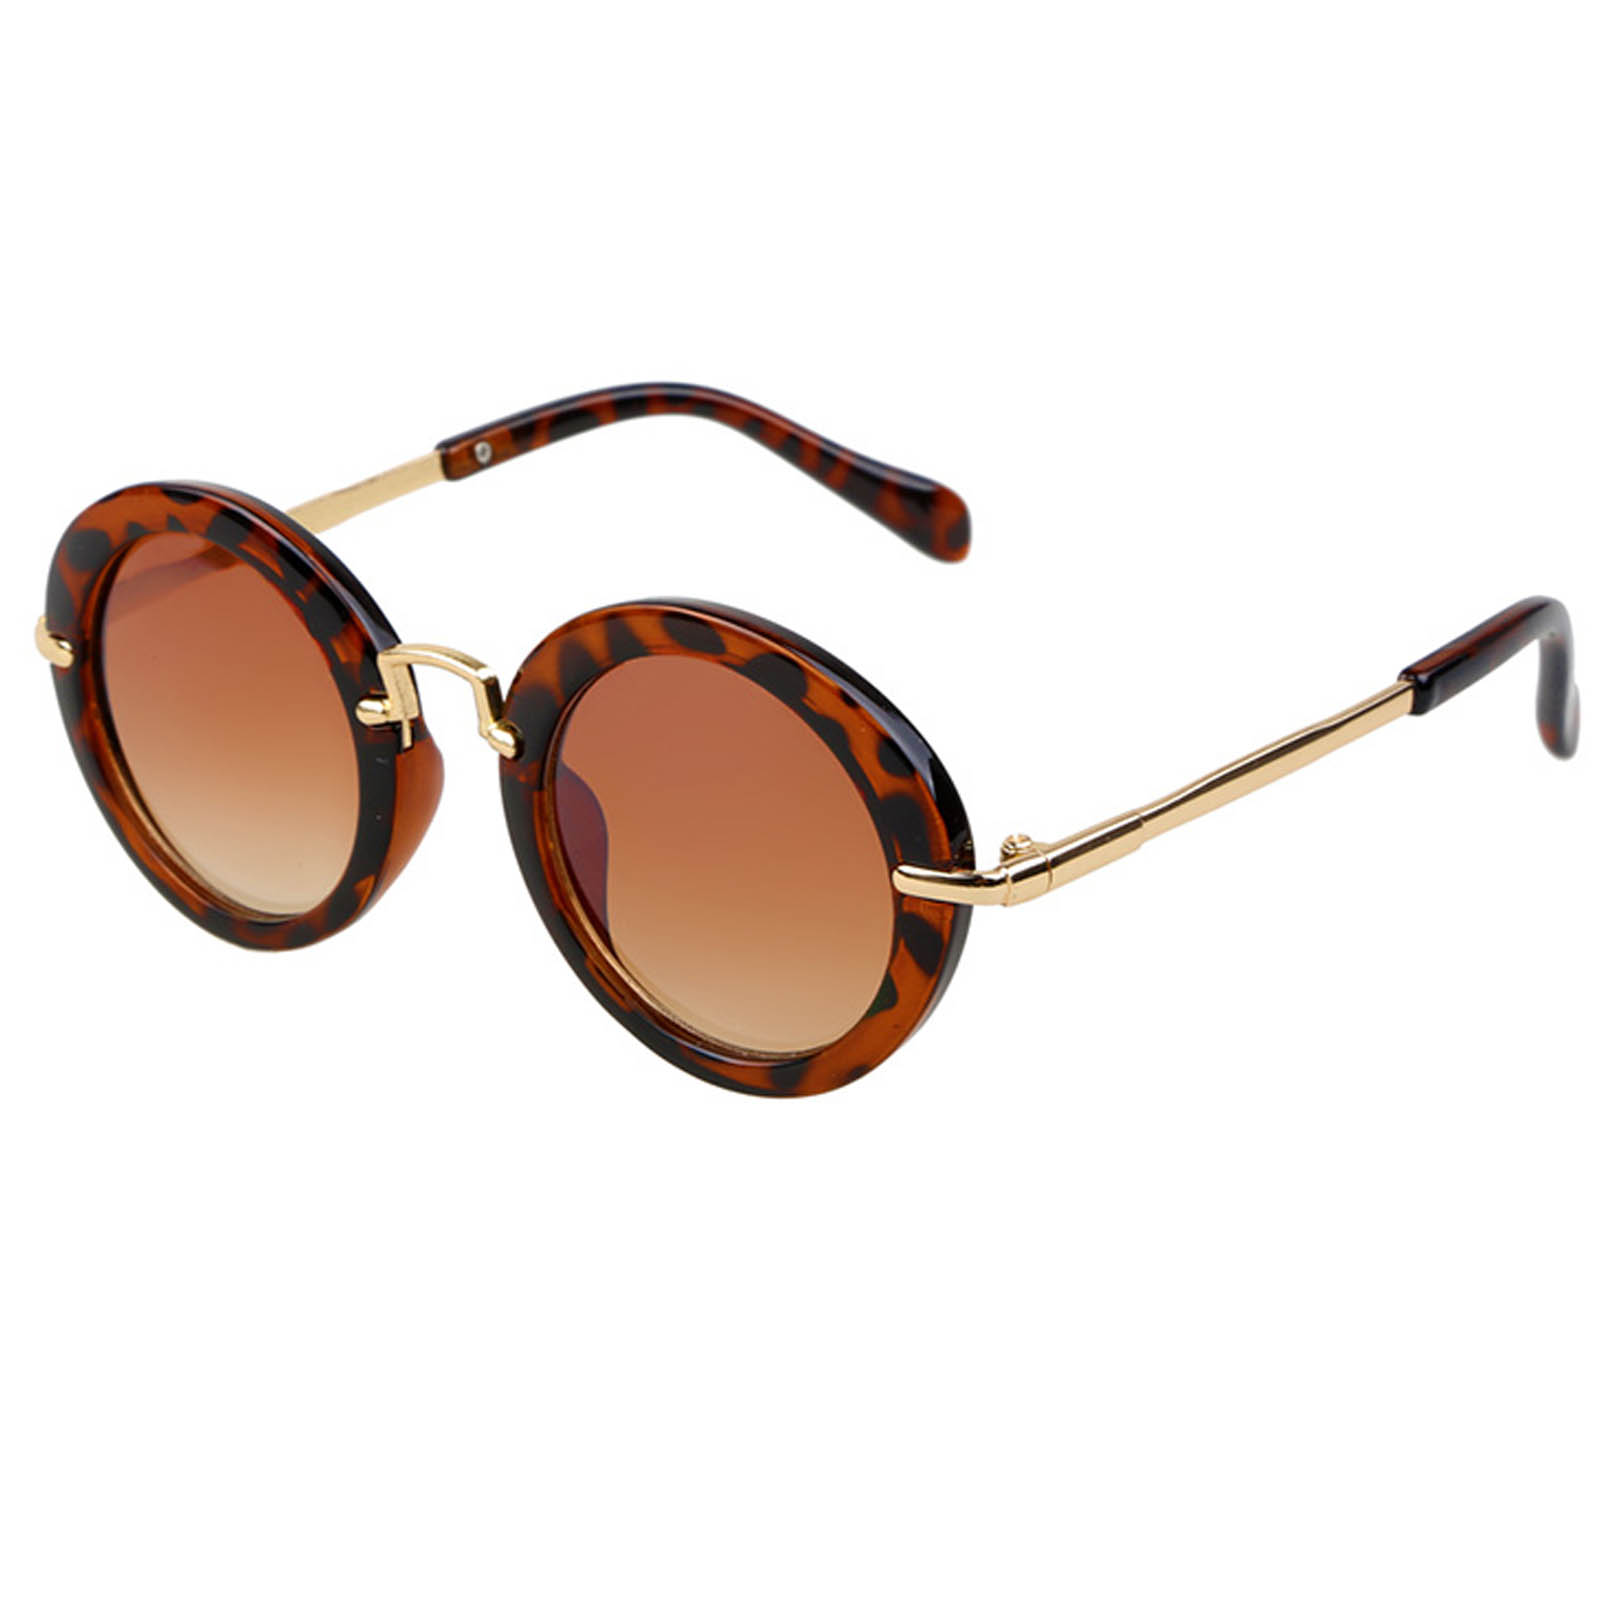 OWL ® 045 C1 Round Eyewear Sunglasses Women's Men's Metal Round Circle Leopard Frame Btown Lens One Pair